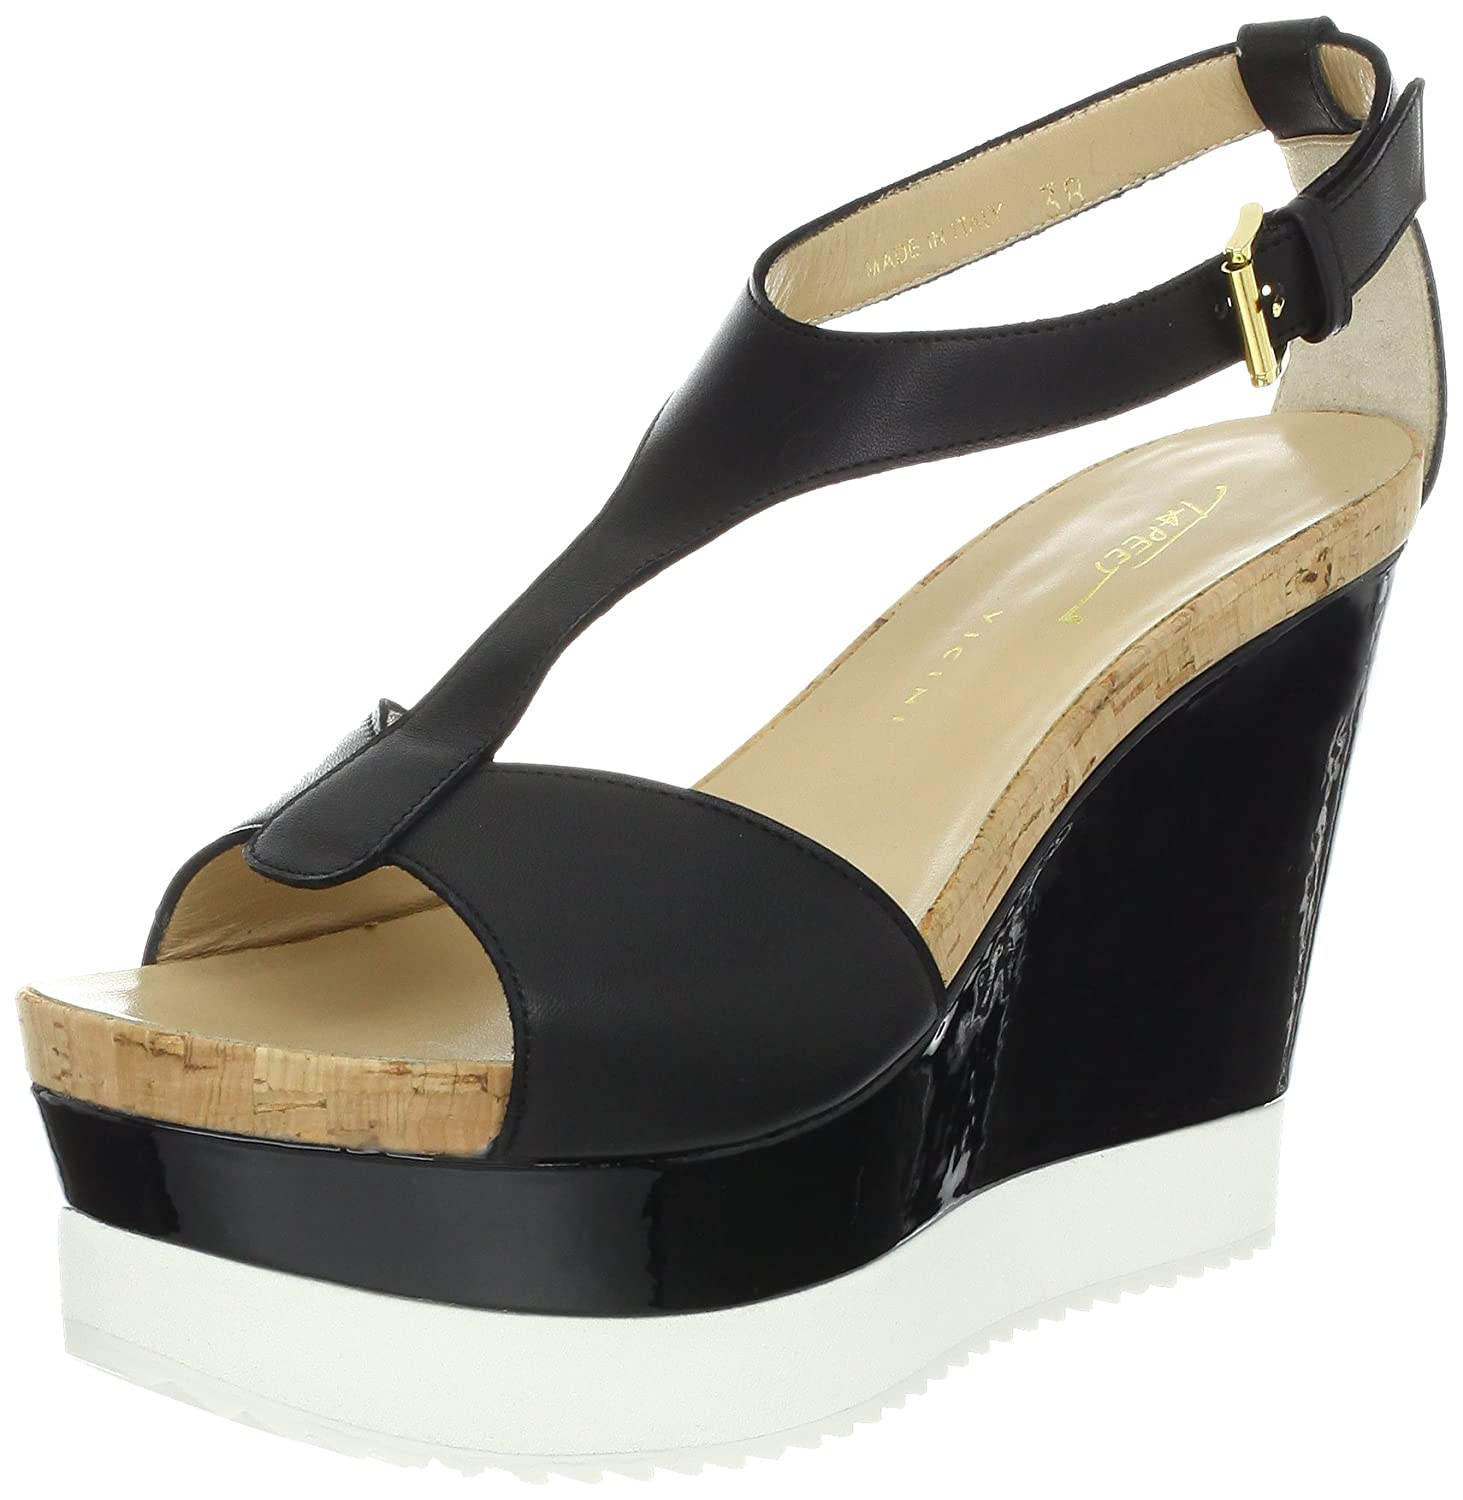 Tapeet by Vicini Women's T-Strap Platform Wedge Sandal B009K3V64M 7 B(M) US|Vitello Nero